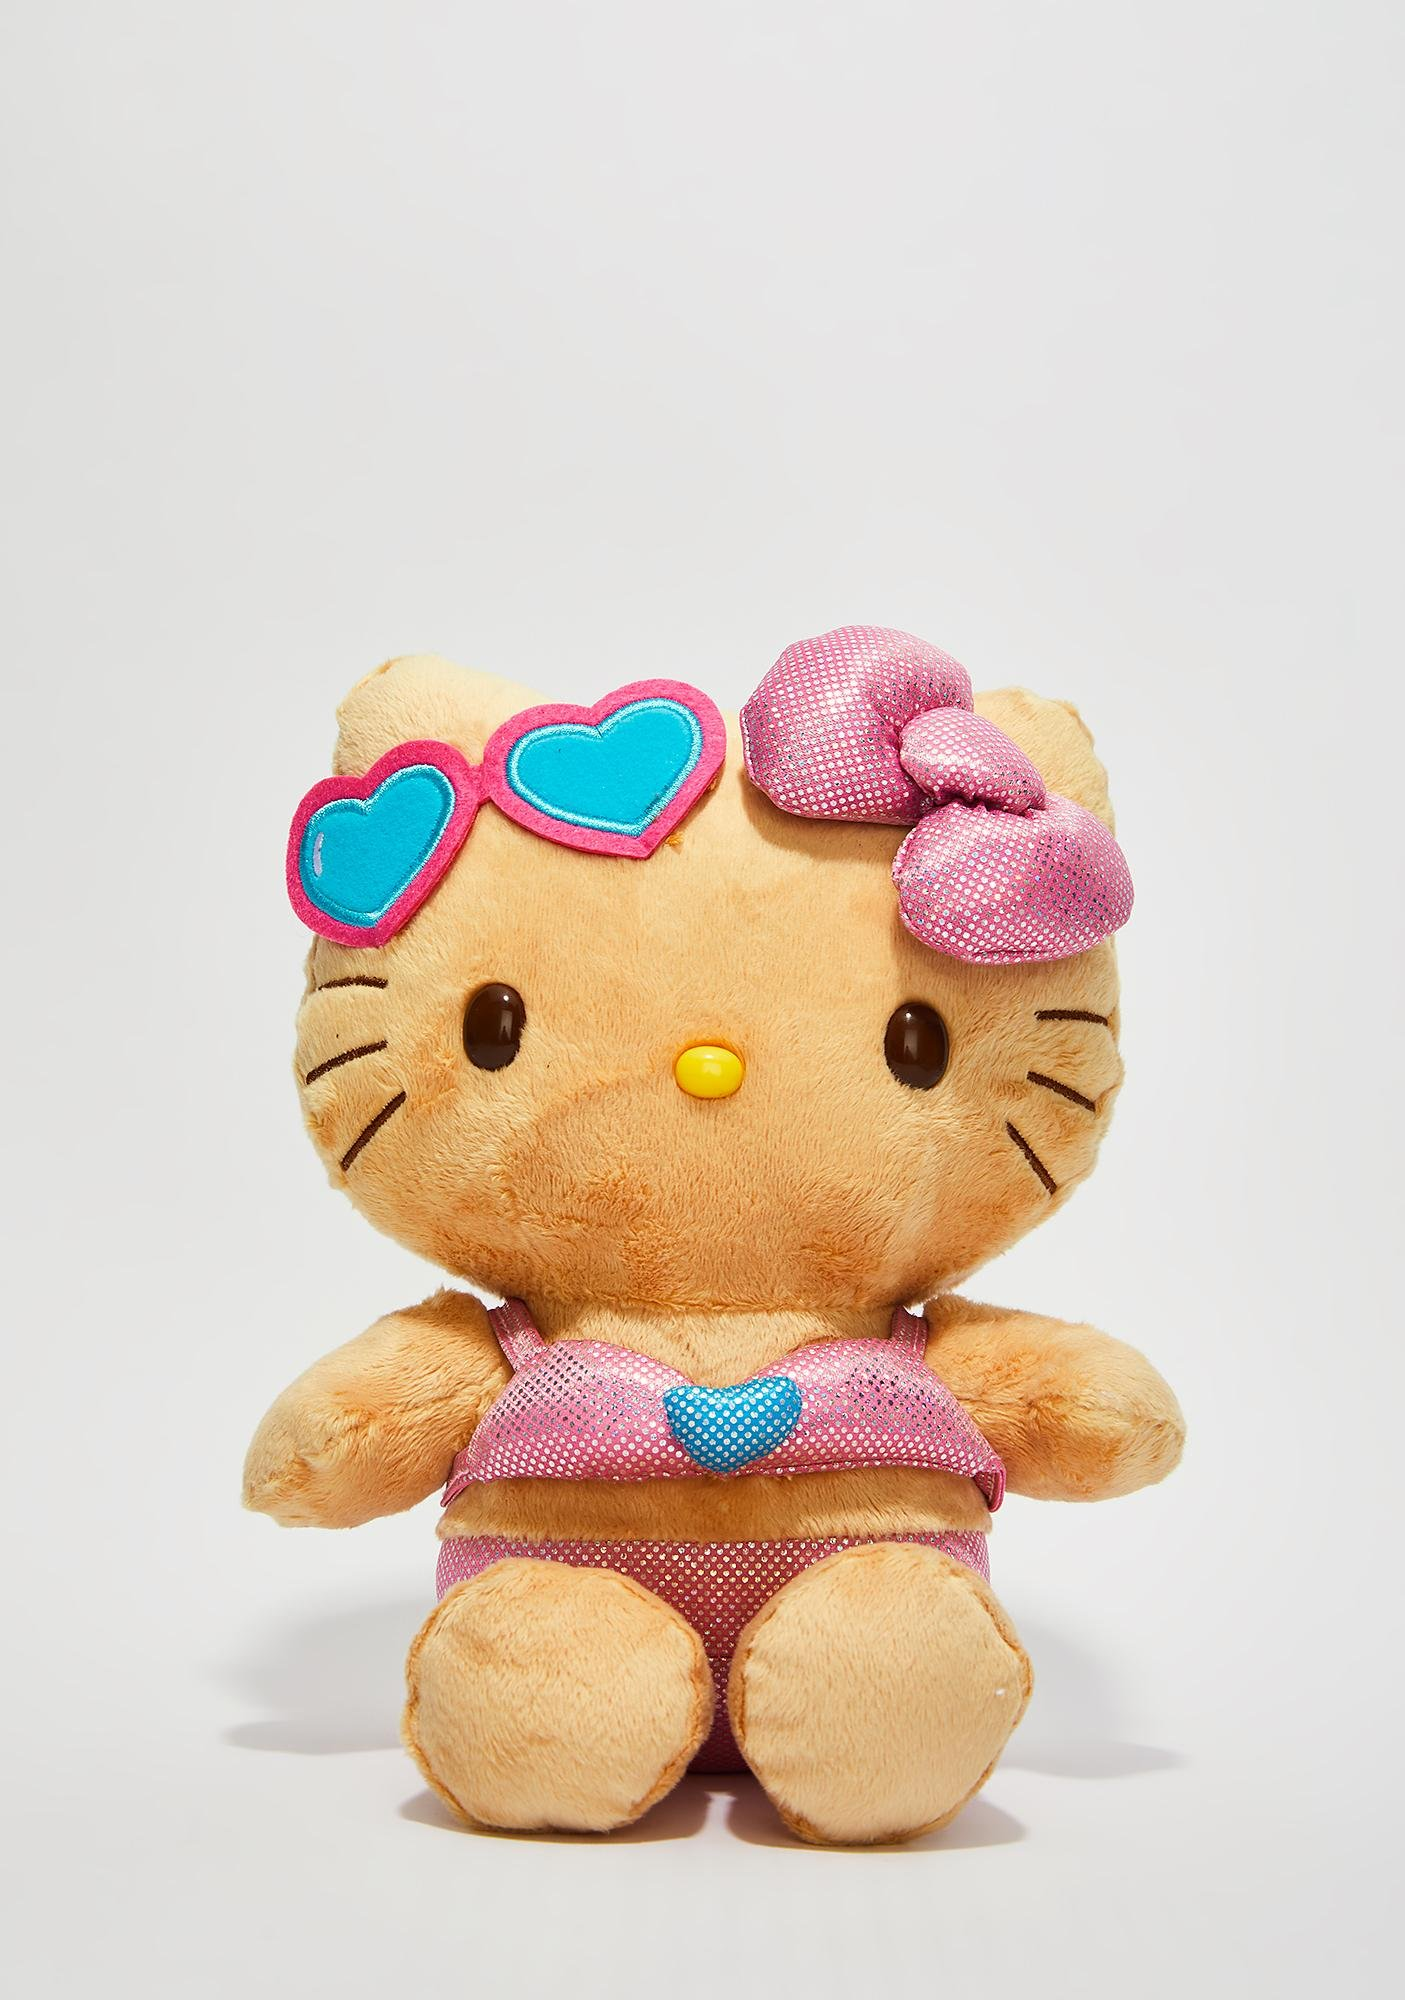 Sanrio Beach Hello Kitty Plush